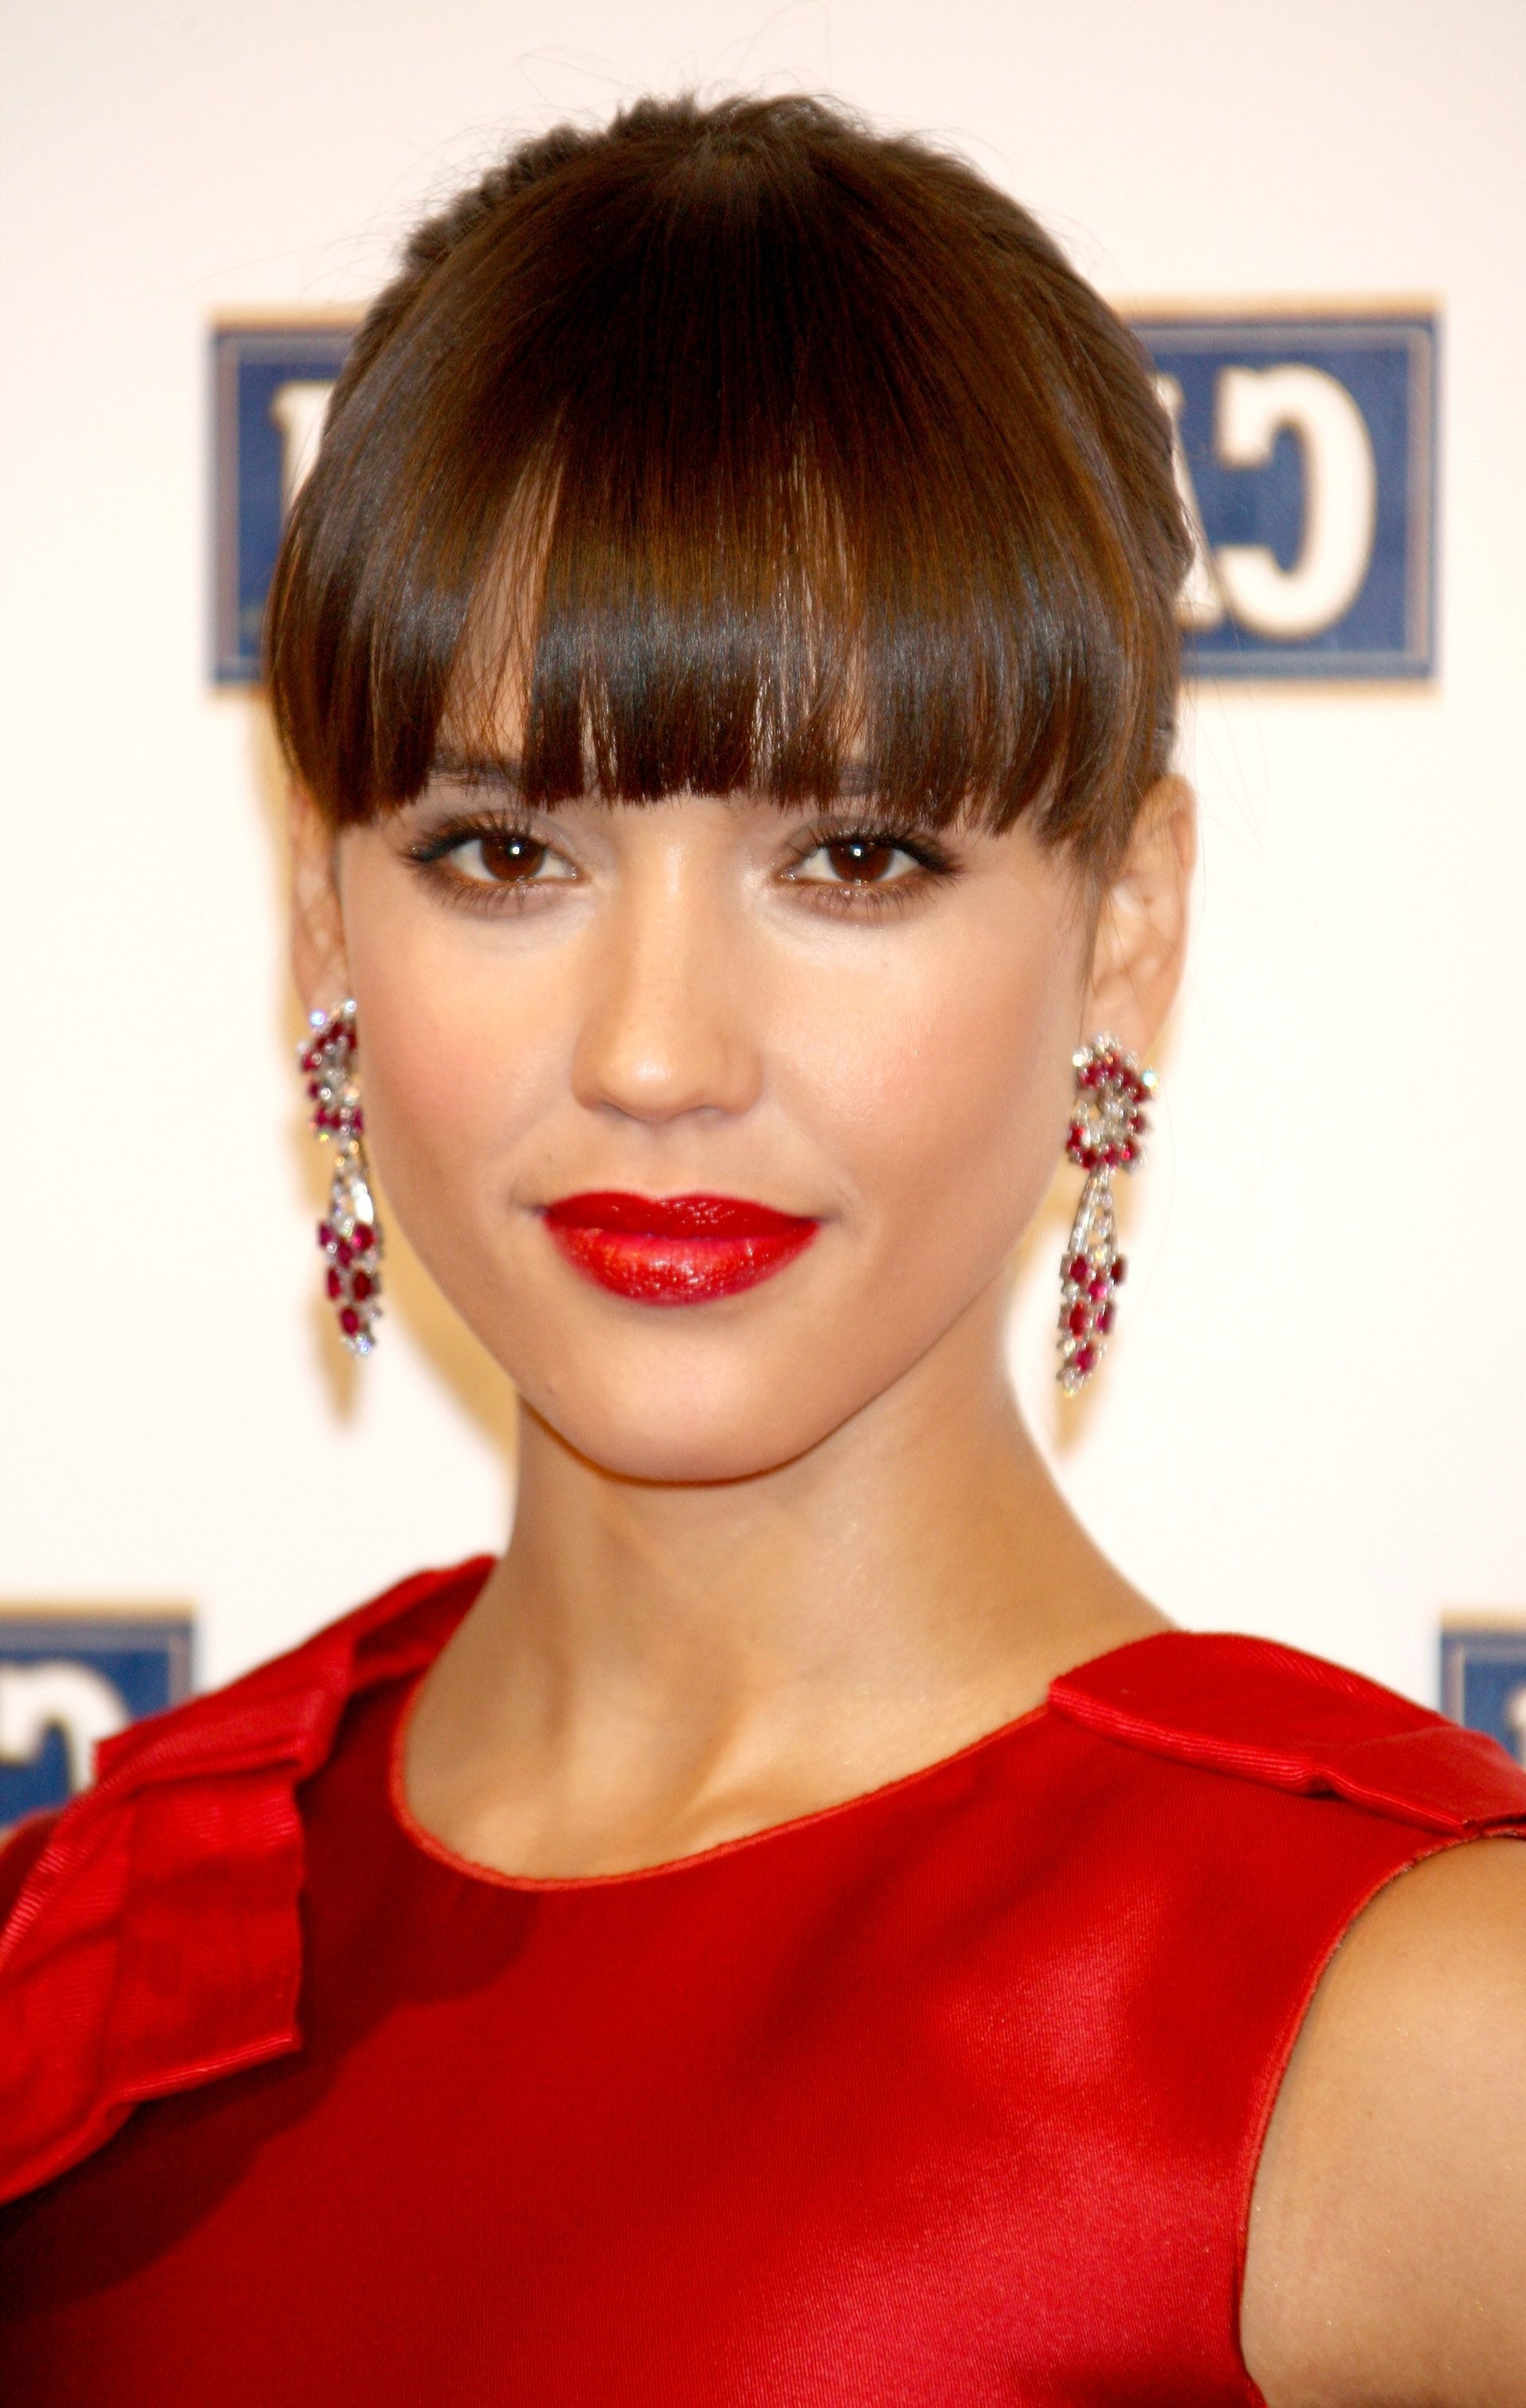 35 Best Hairstyles With Bangs – Photos Of Celebrity Haircuts With Bangs Within Updo Hairstyles With Bangs (View 1 of 15)